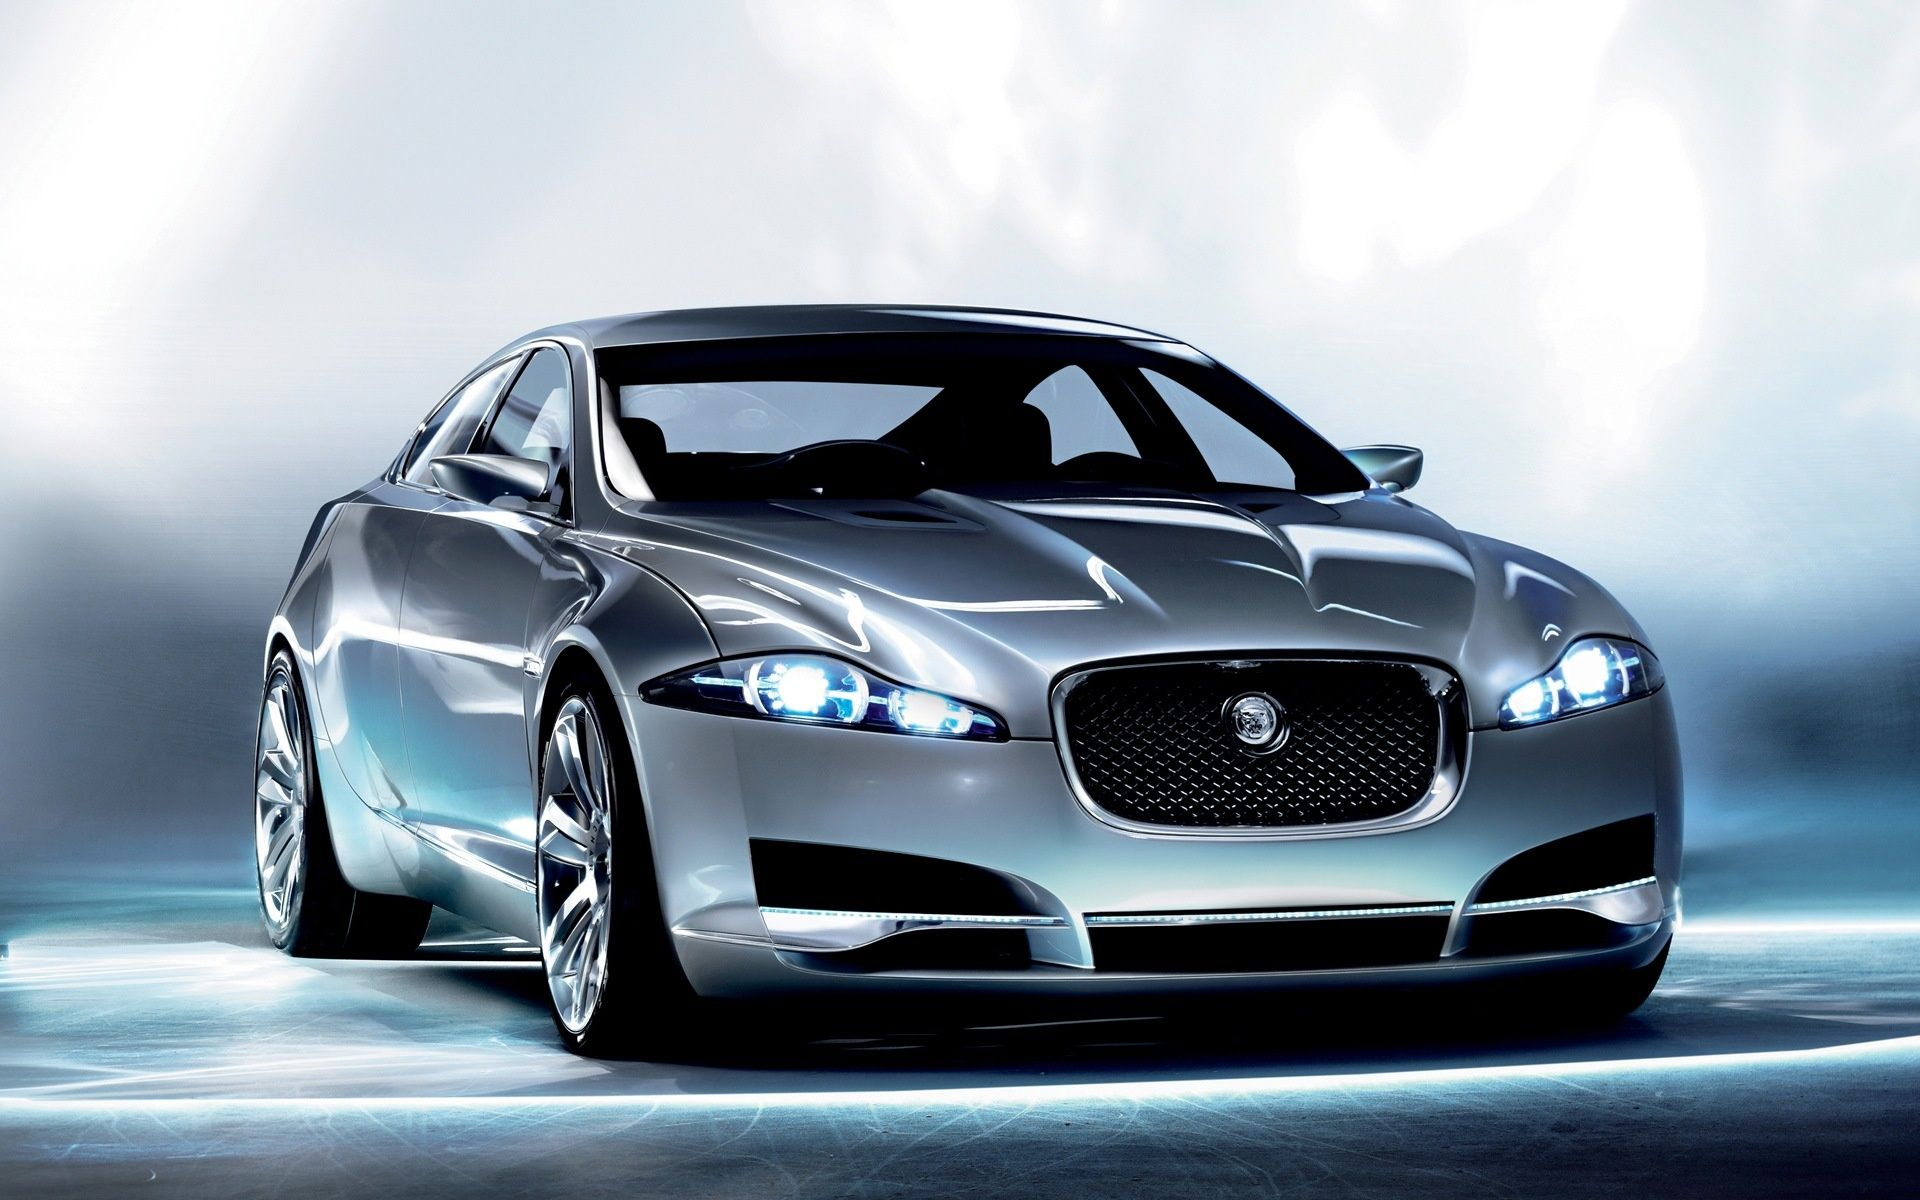 Jaguar C Xf Concept With Images Jaguar Xf Jaguar Car Jaguar Xj